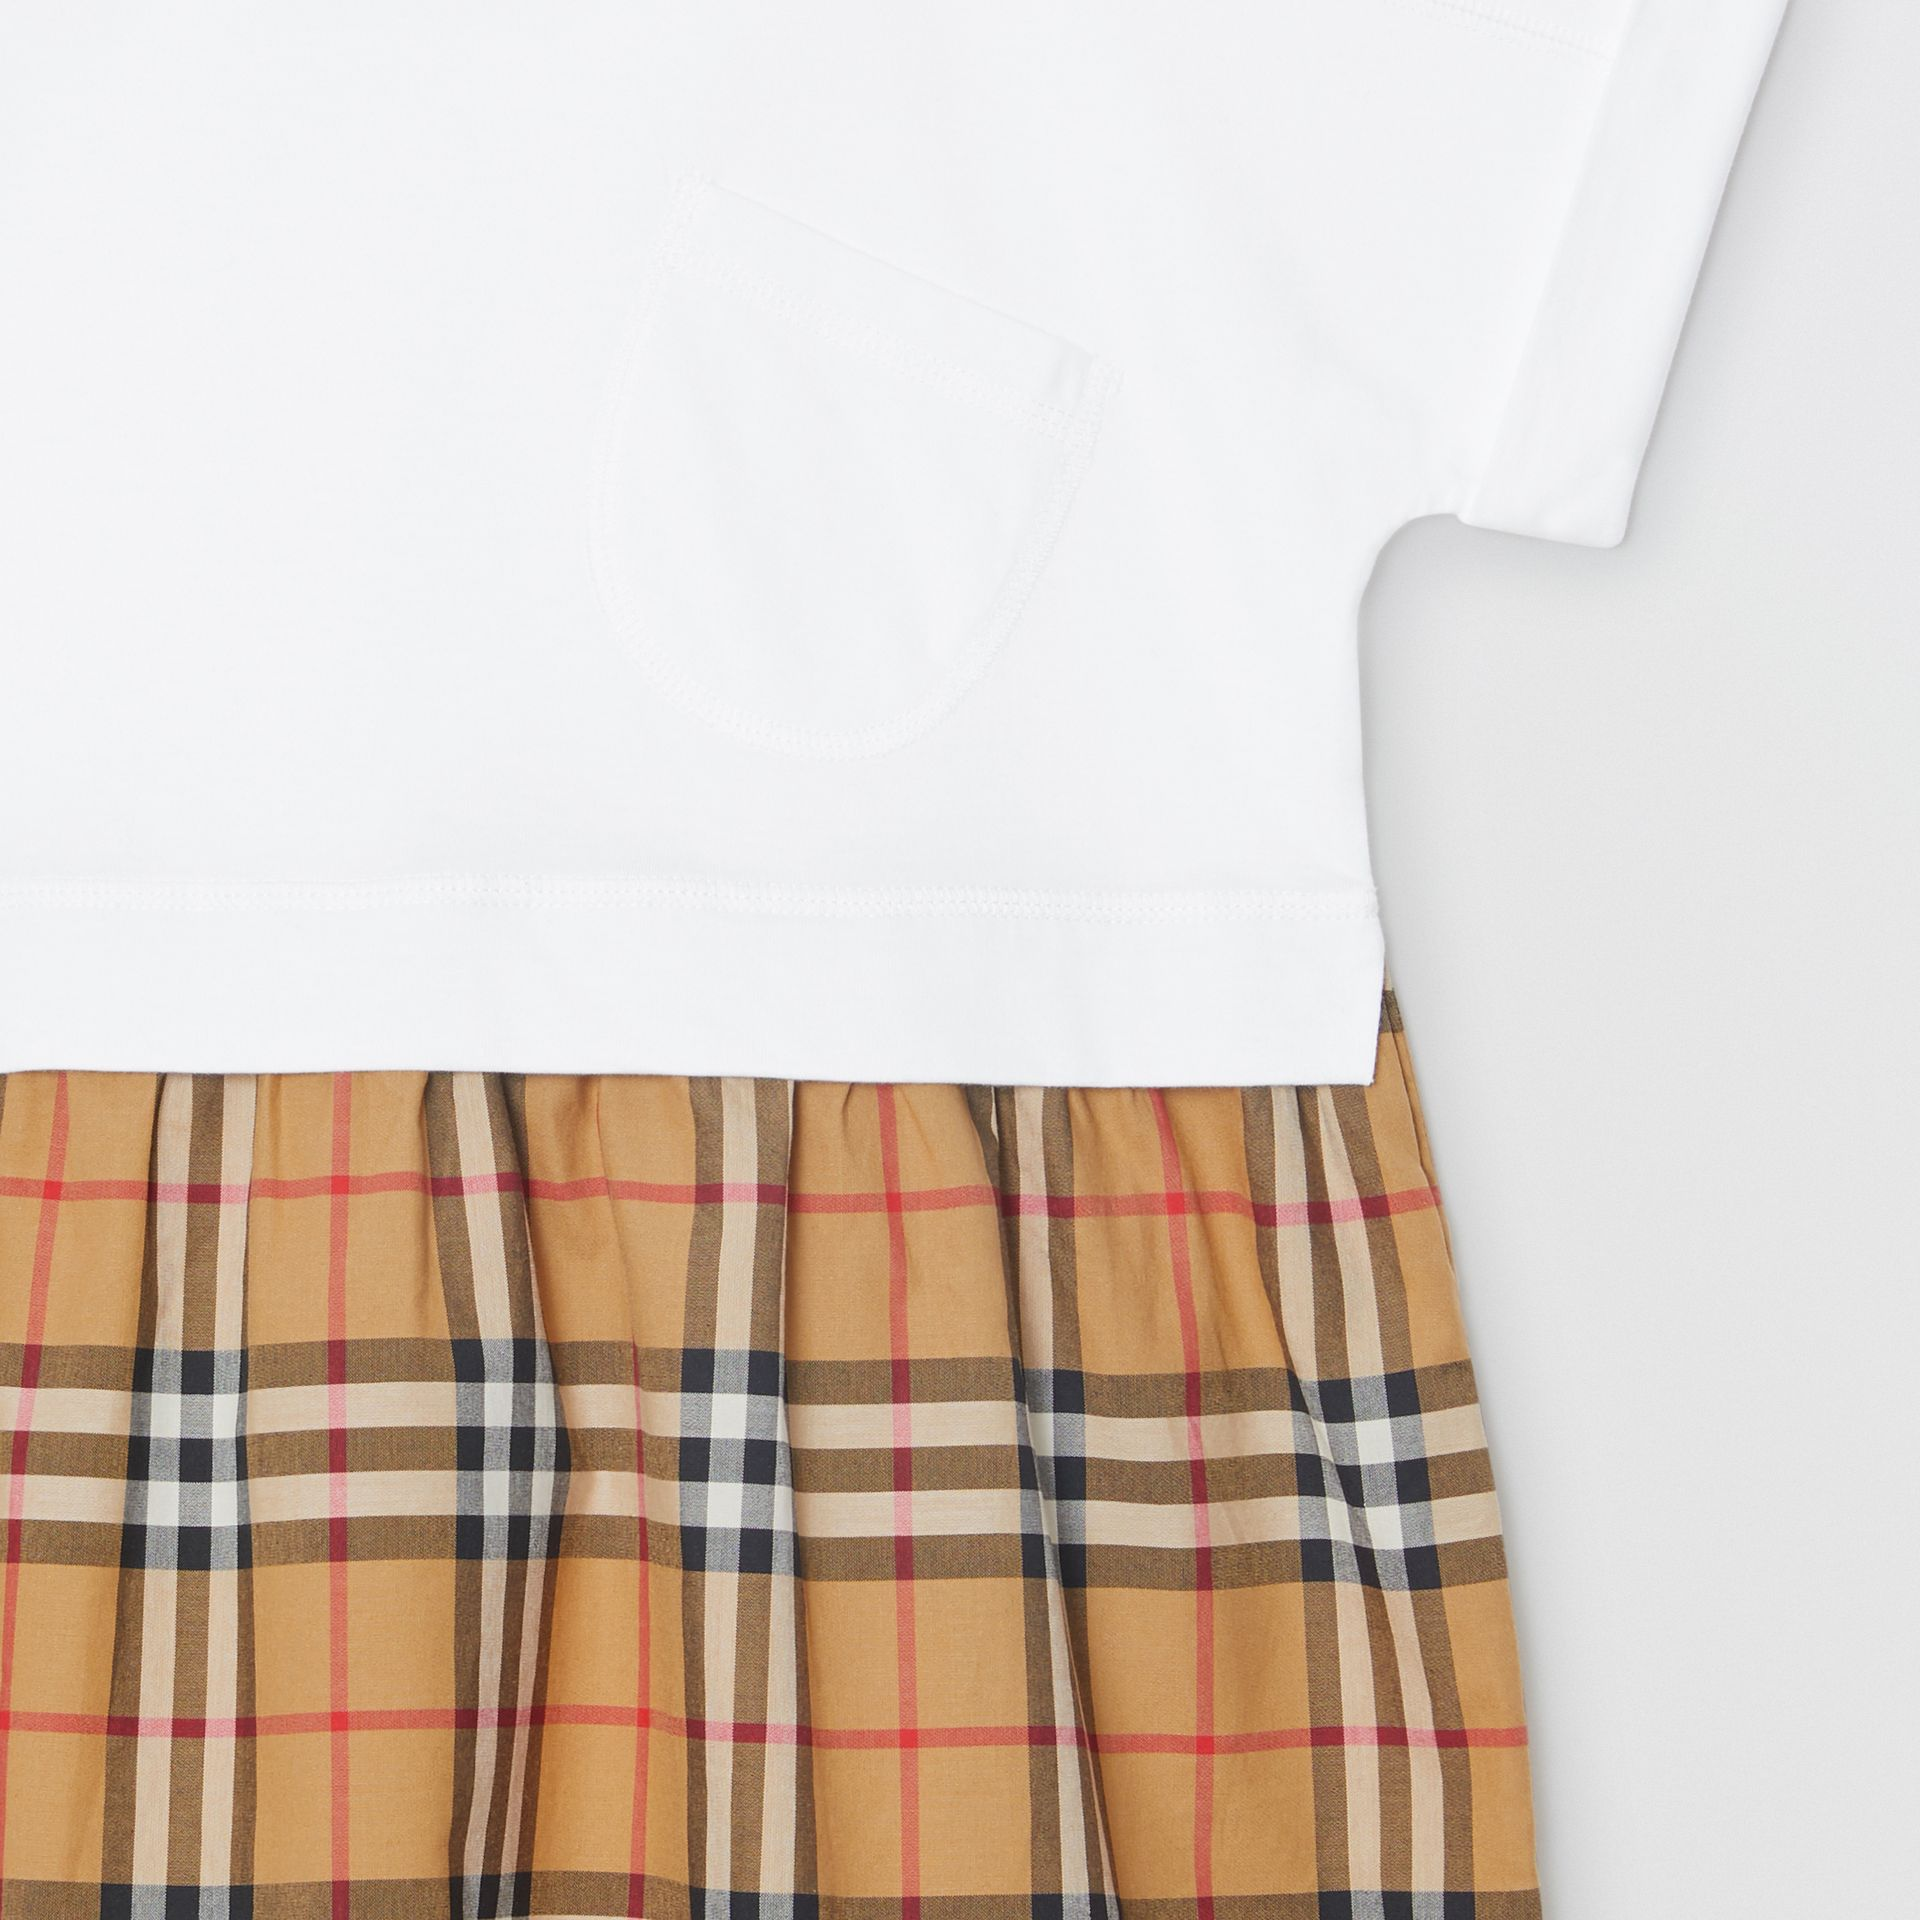 Vintage Check Cotton Dress in White | Burberry - gallery image 4